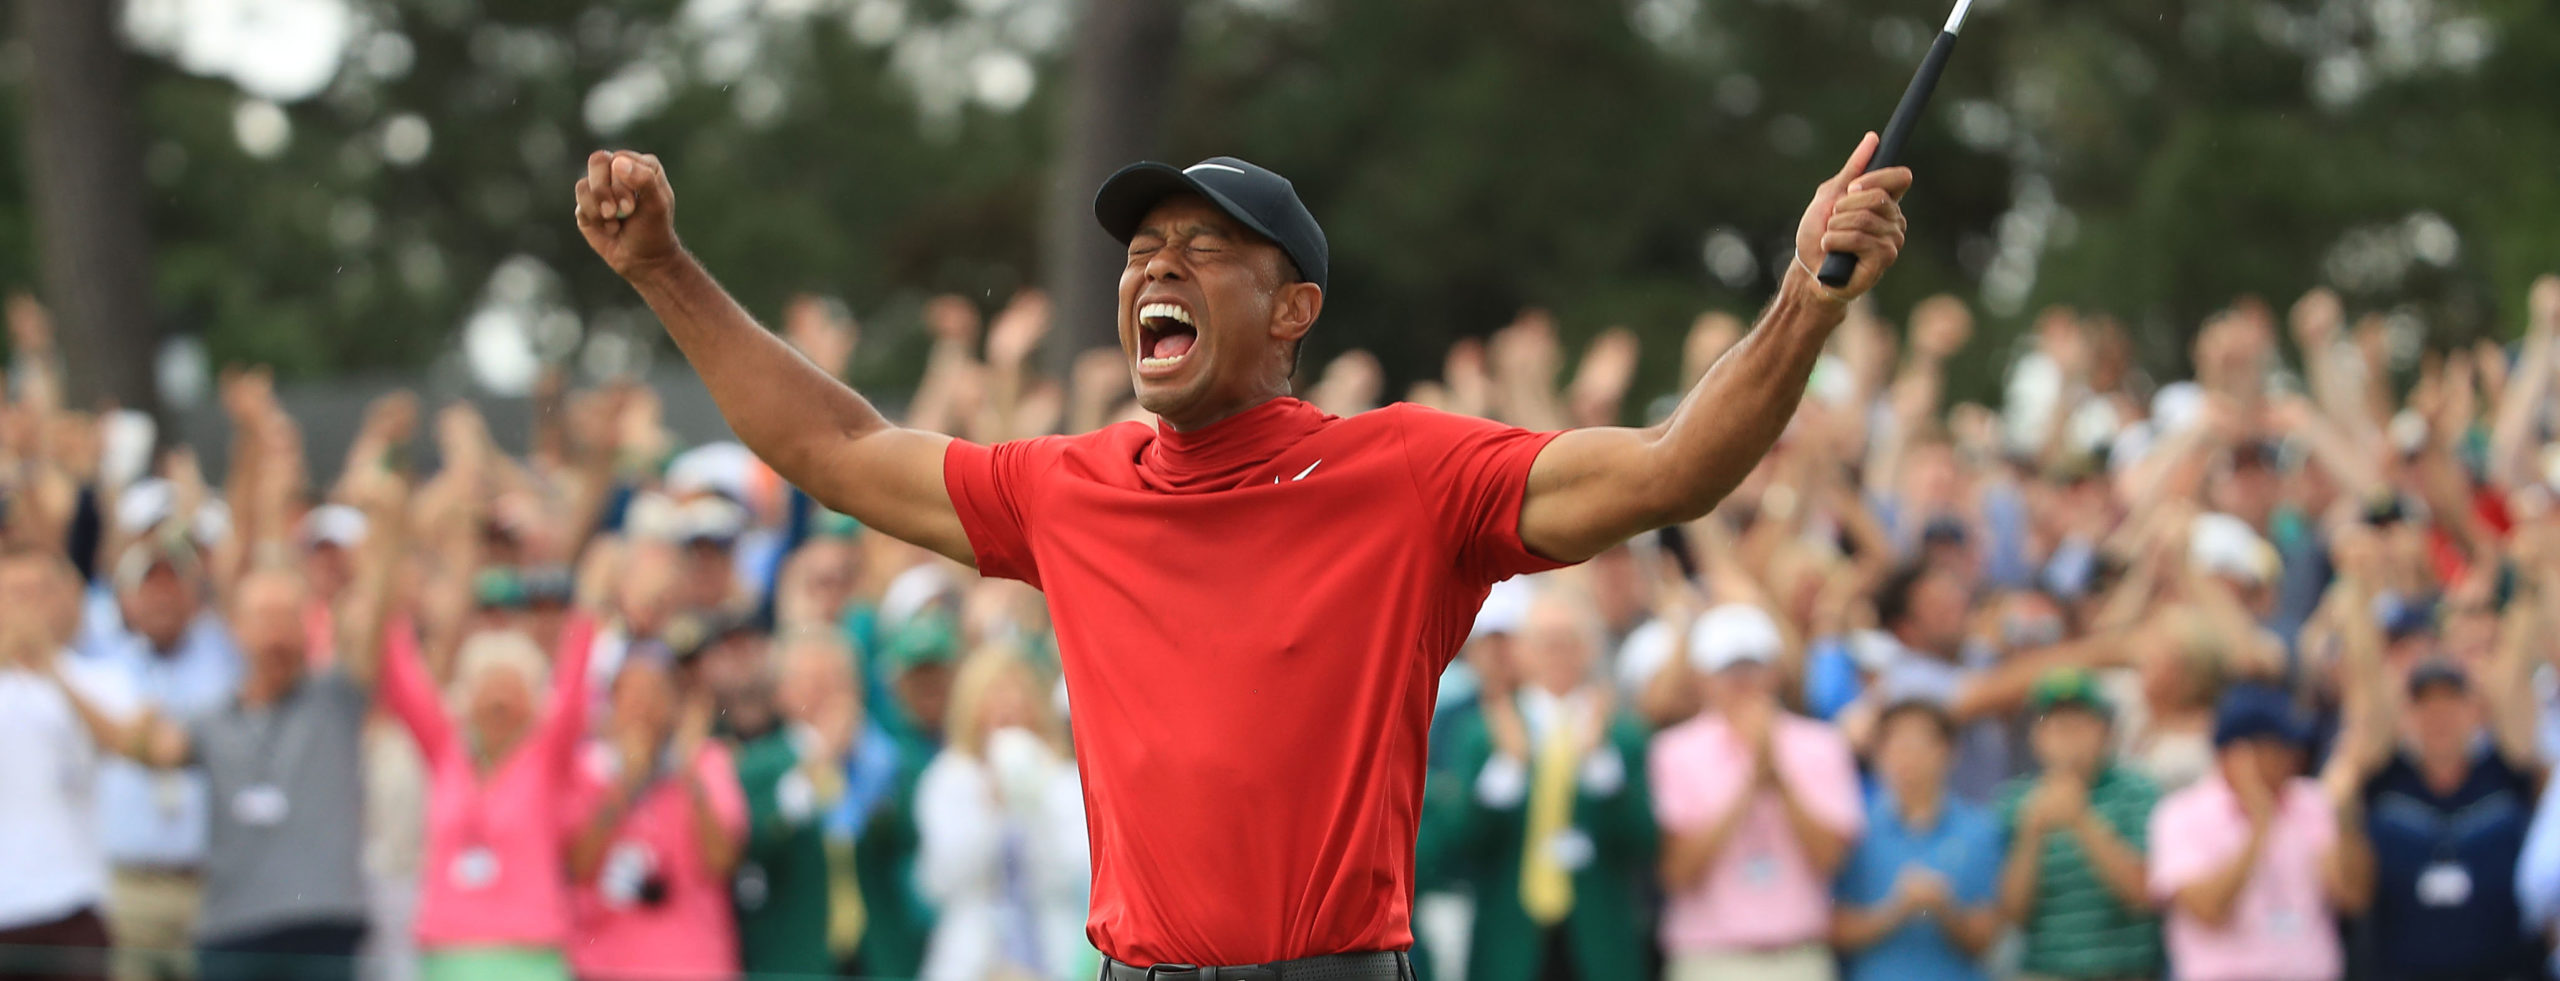 US Masters trends: What does it take to win at Augusta?